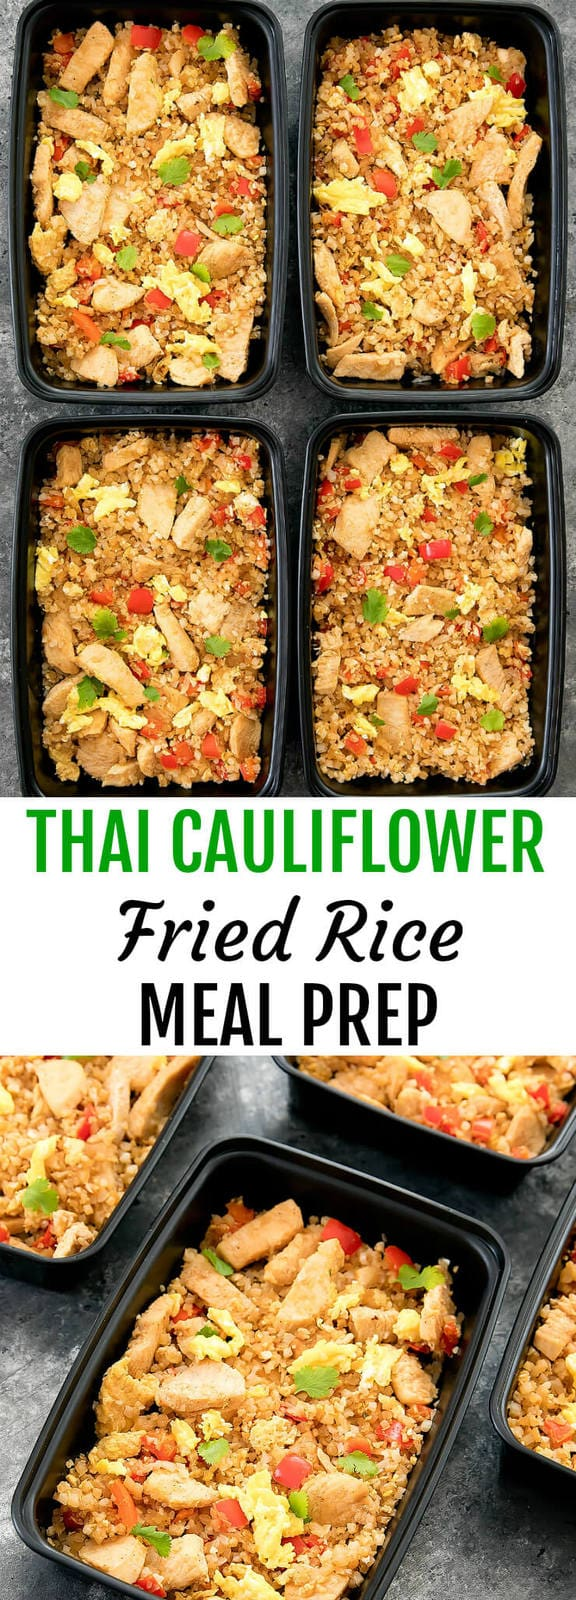 Thai Cauliflower Fried Rice Meal Prep. Flavorful, low carb, easy to make and ready in less than 30 minutes.